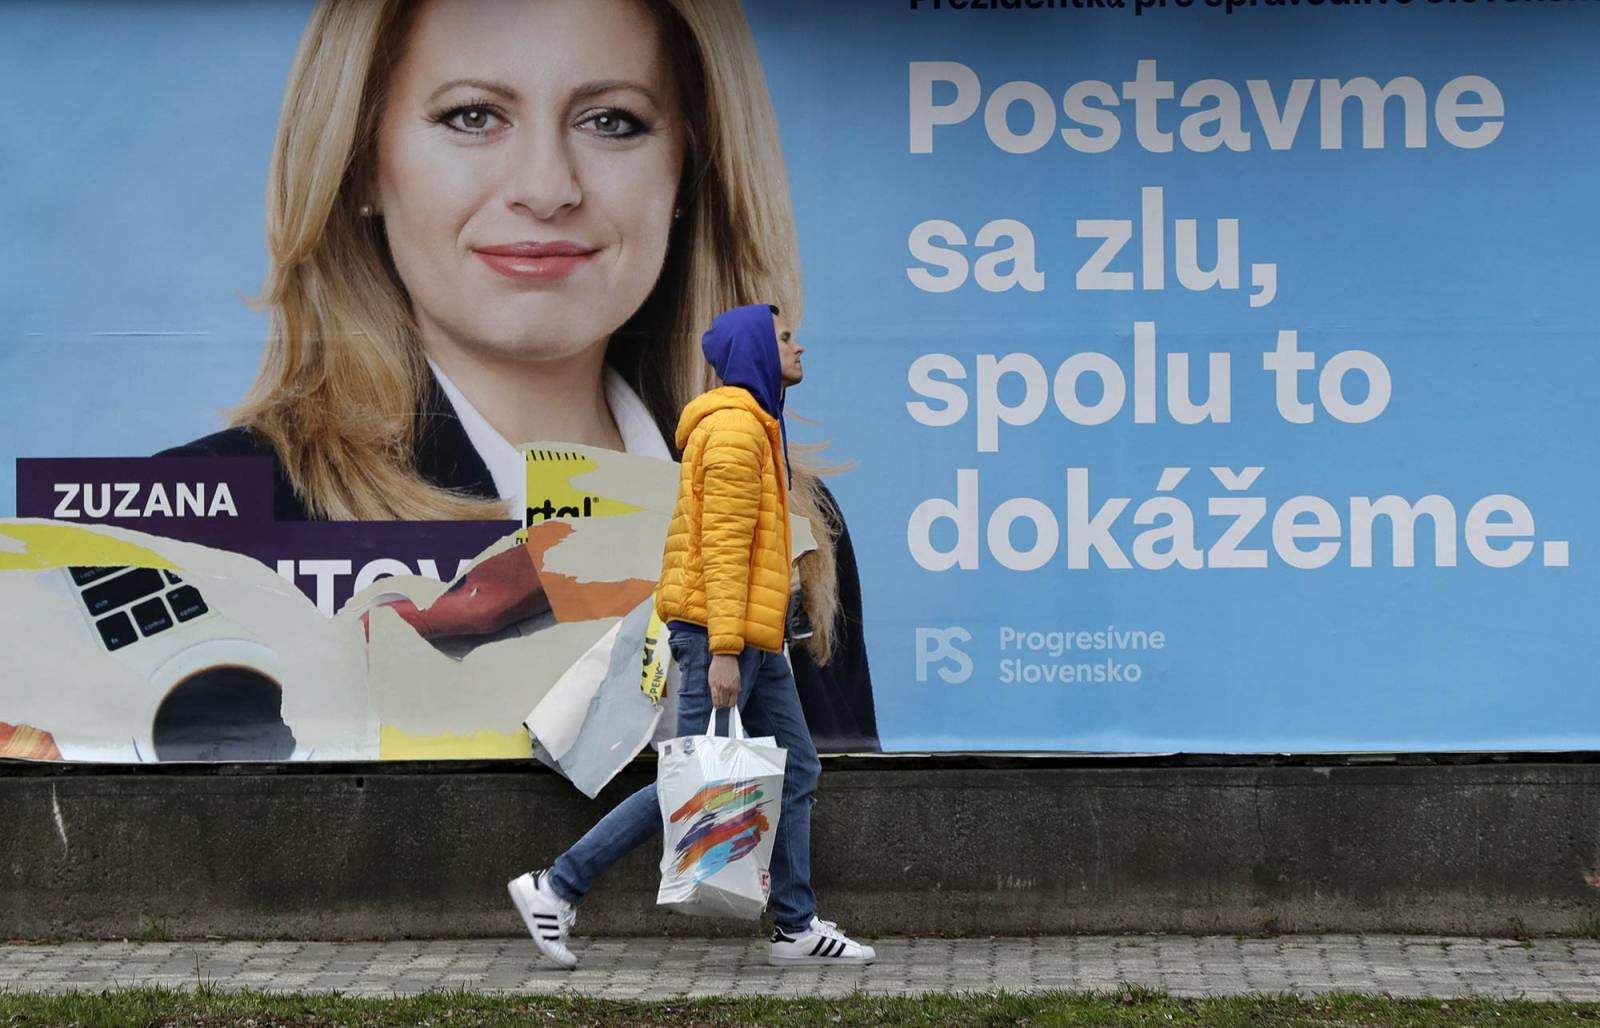 Plakat wyborczy (Fot. AP / Associated Press / East News)